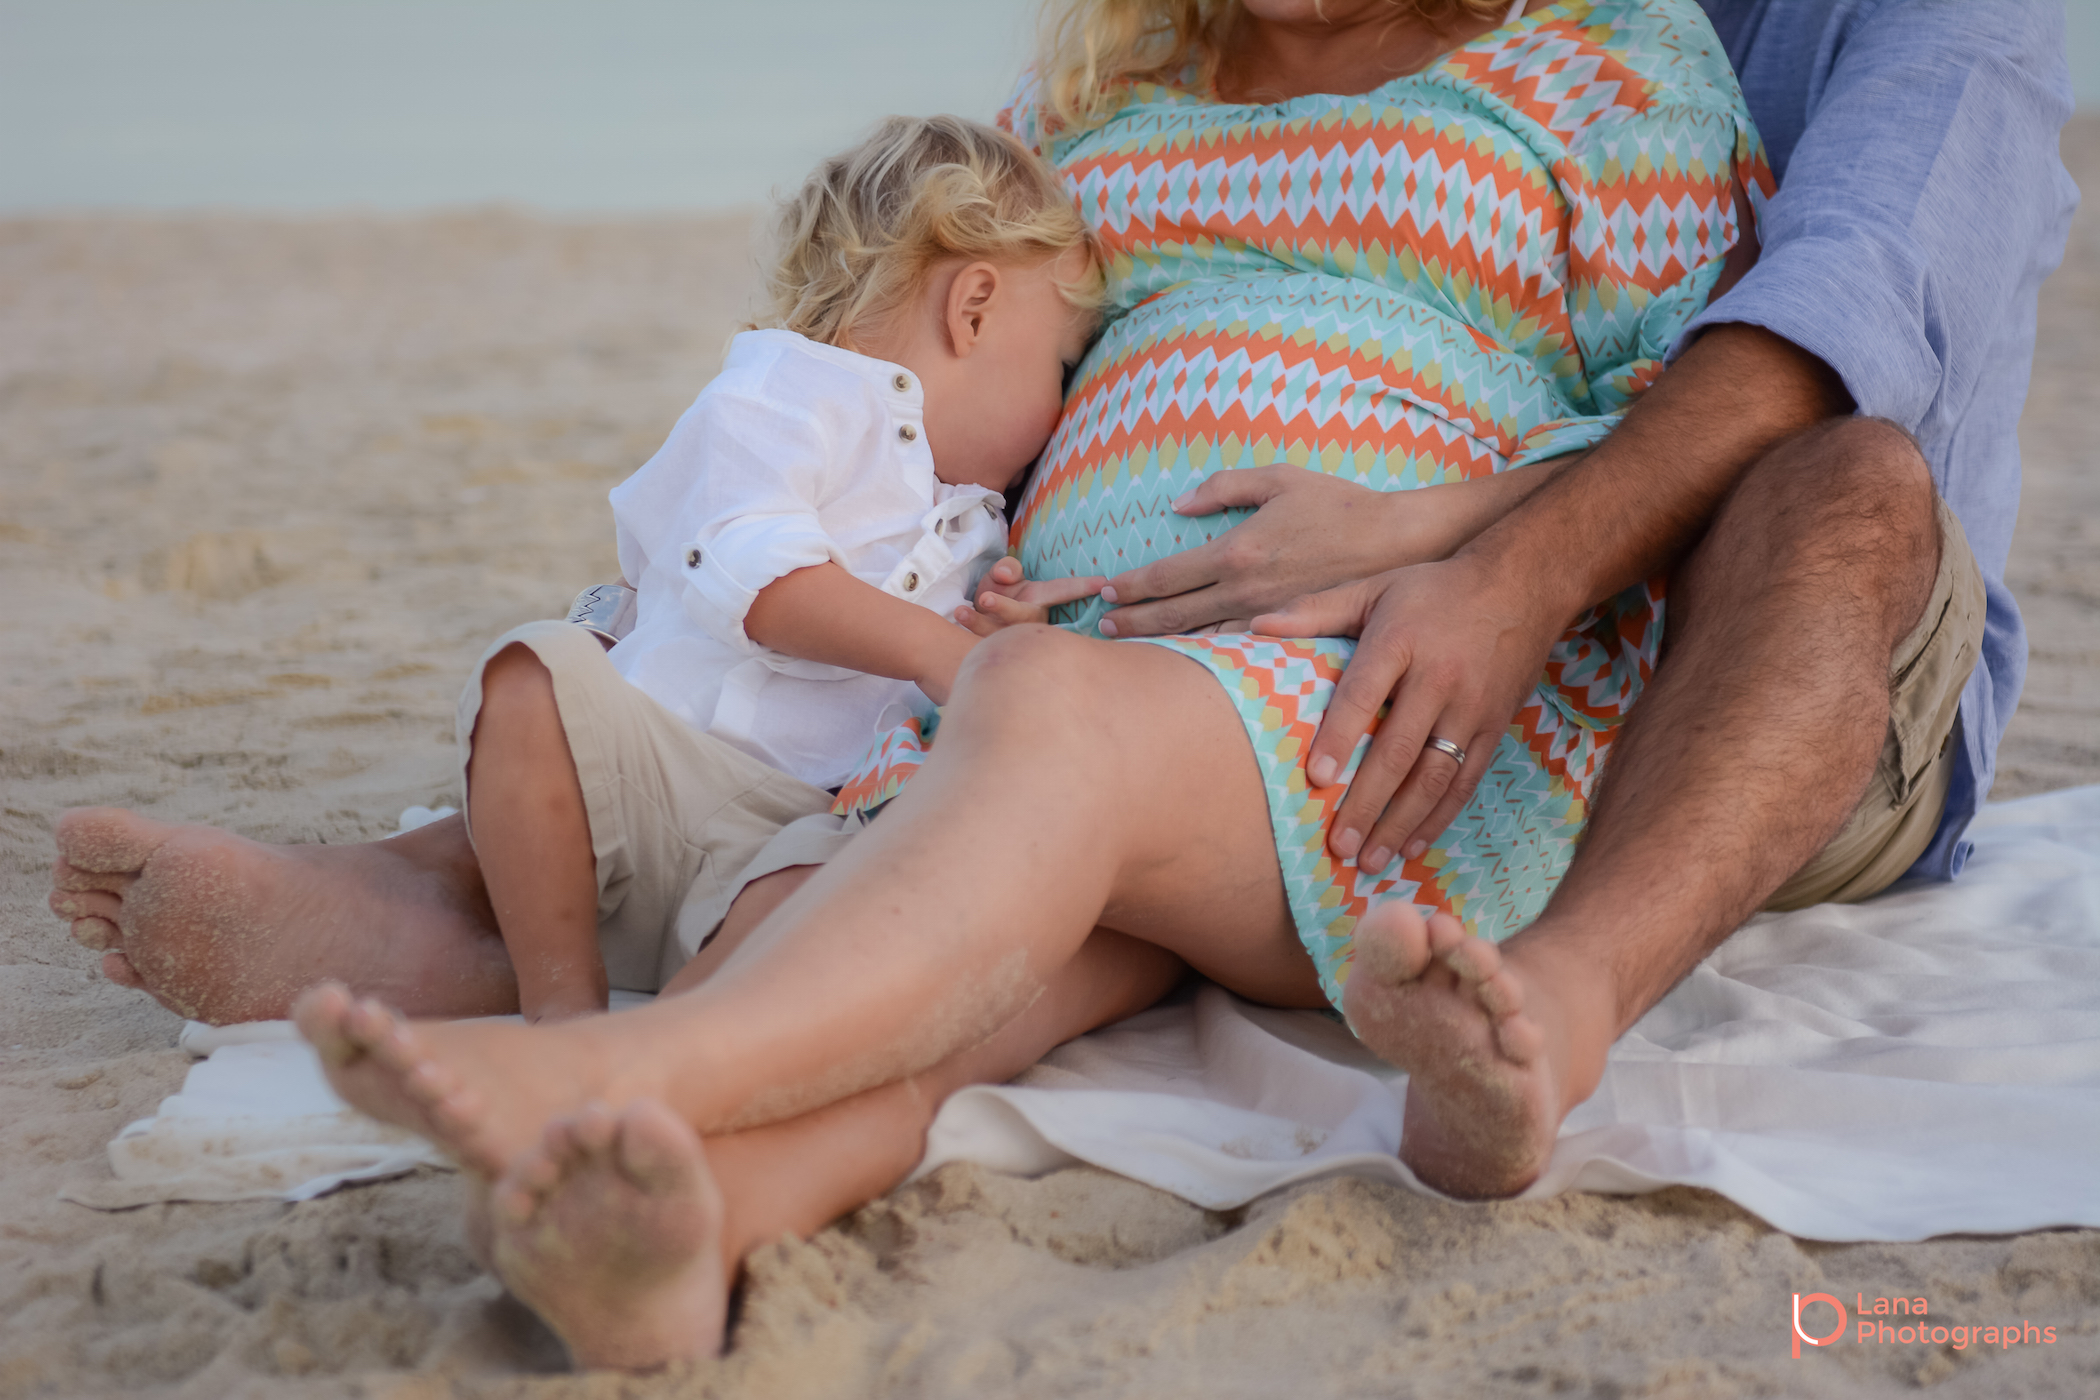 Beach Family and Maternity Session in Dubai little boy snuggling his mother's pregnant belly by the beach